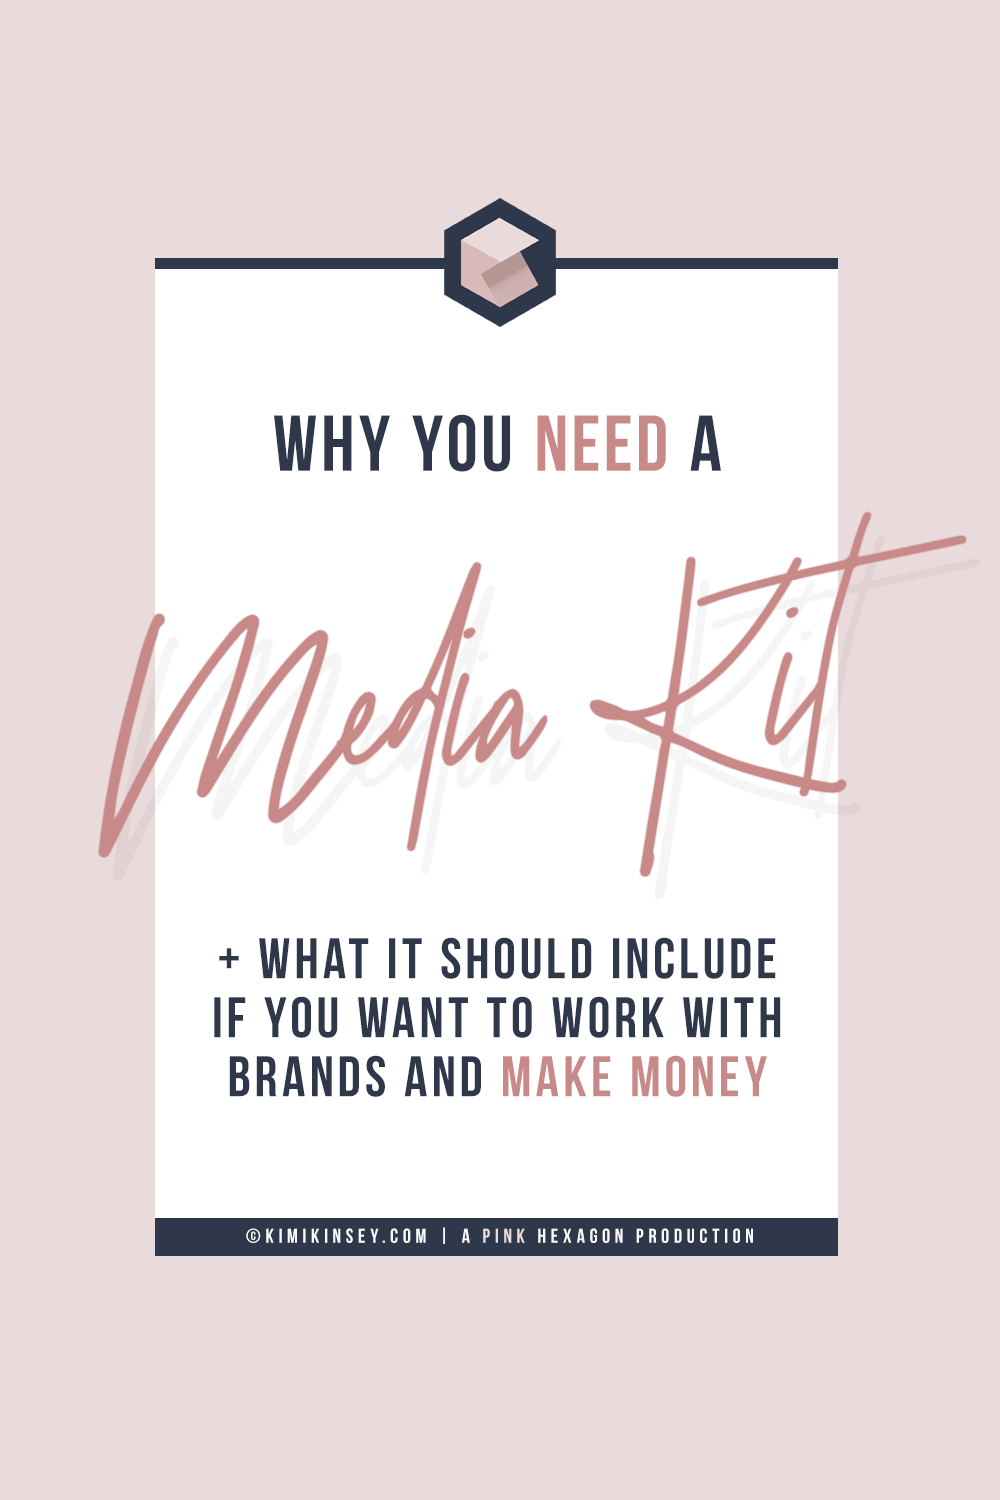 What is a media kit and why would you need one?If you want to work with brands and make money writing sponsored posts, you'll need a media kit that tells them about you and your blog. Find out how to make a media kit and what it should include. #brandpartnerships #bloggingtips #sponsorships #mediakit